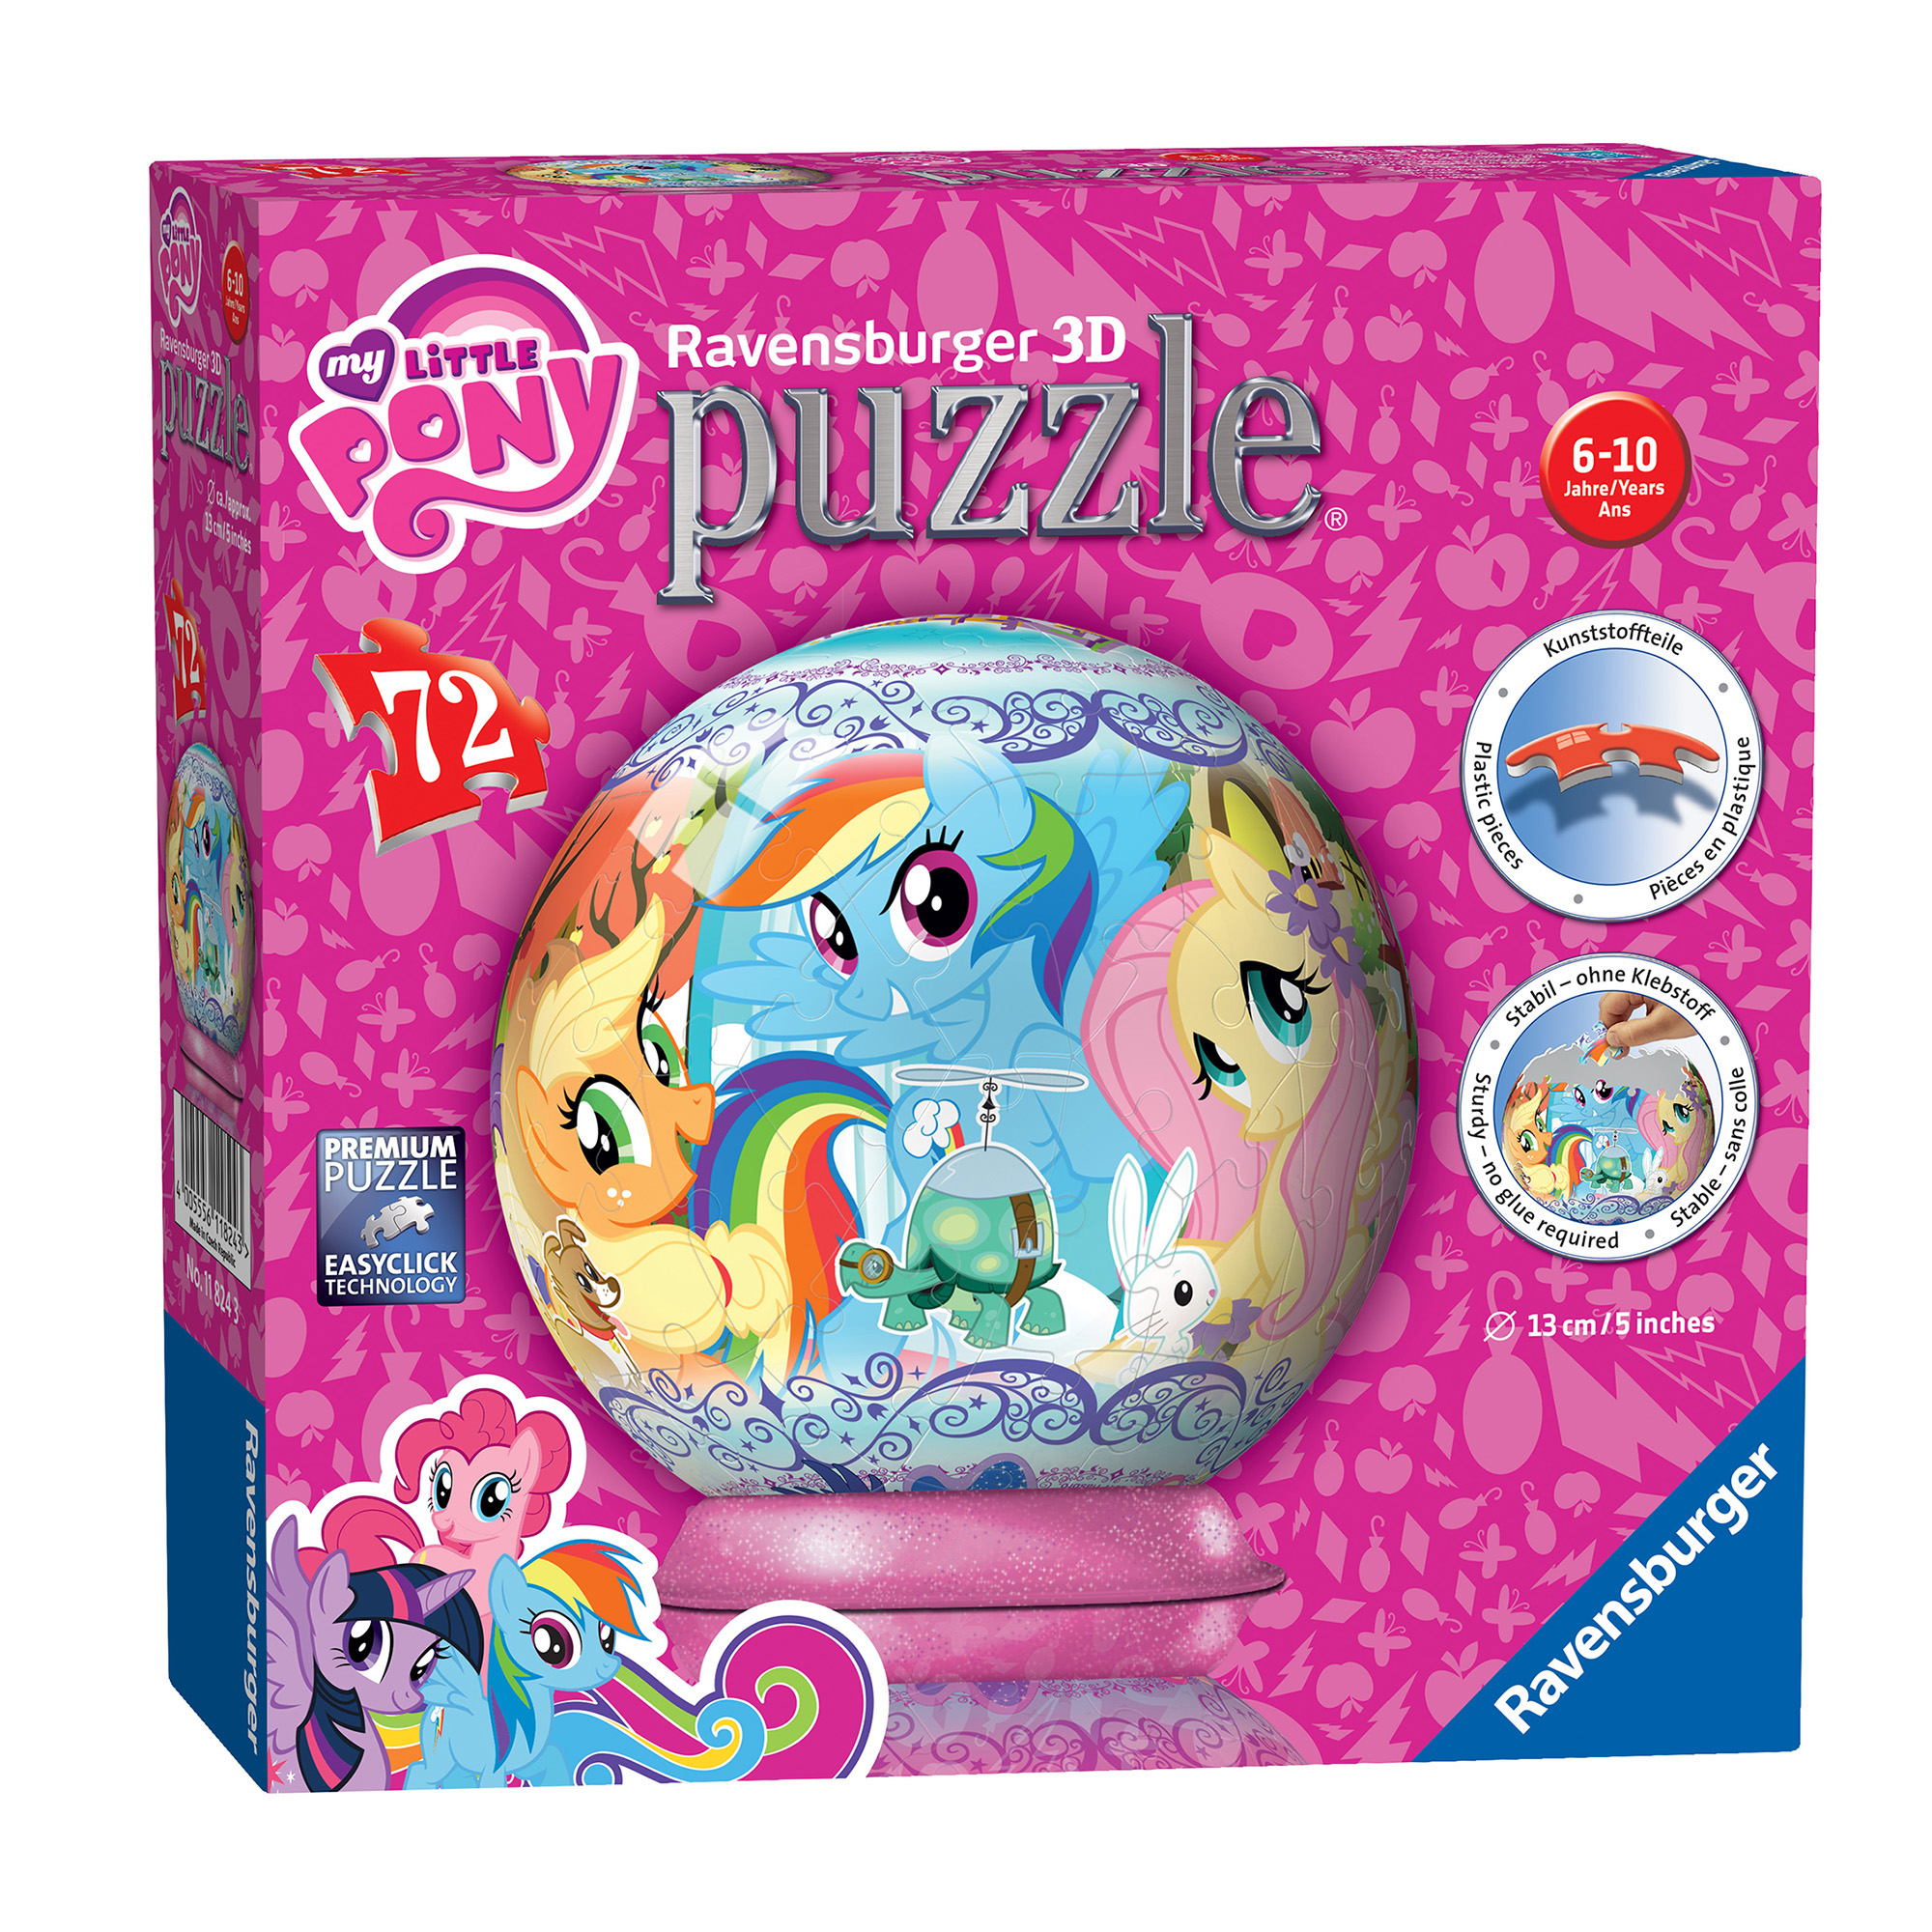 Ravensburger My Little Pony 72 Piece 3D Puzzle